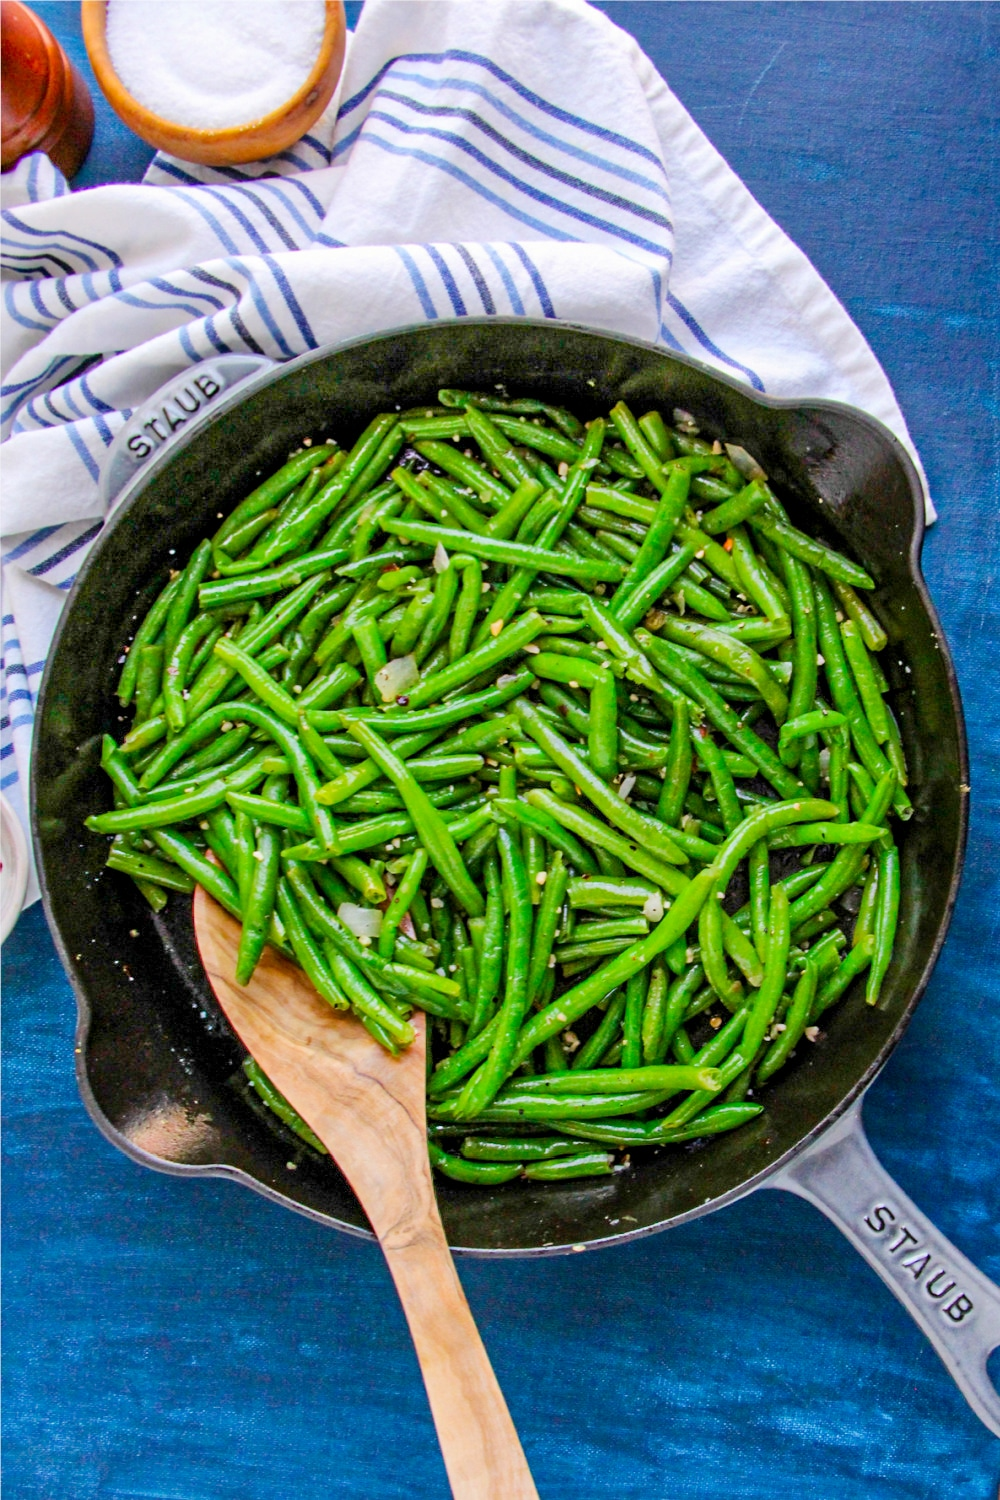 Easy Skillet Green Beans in a skillet with wooden spoon on blue background